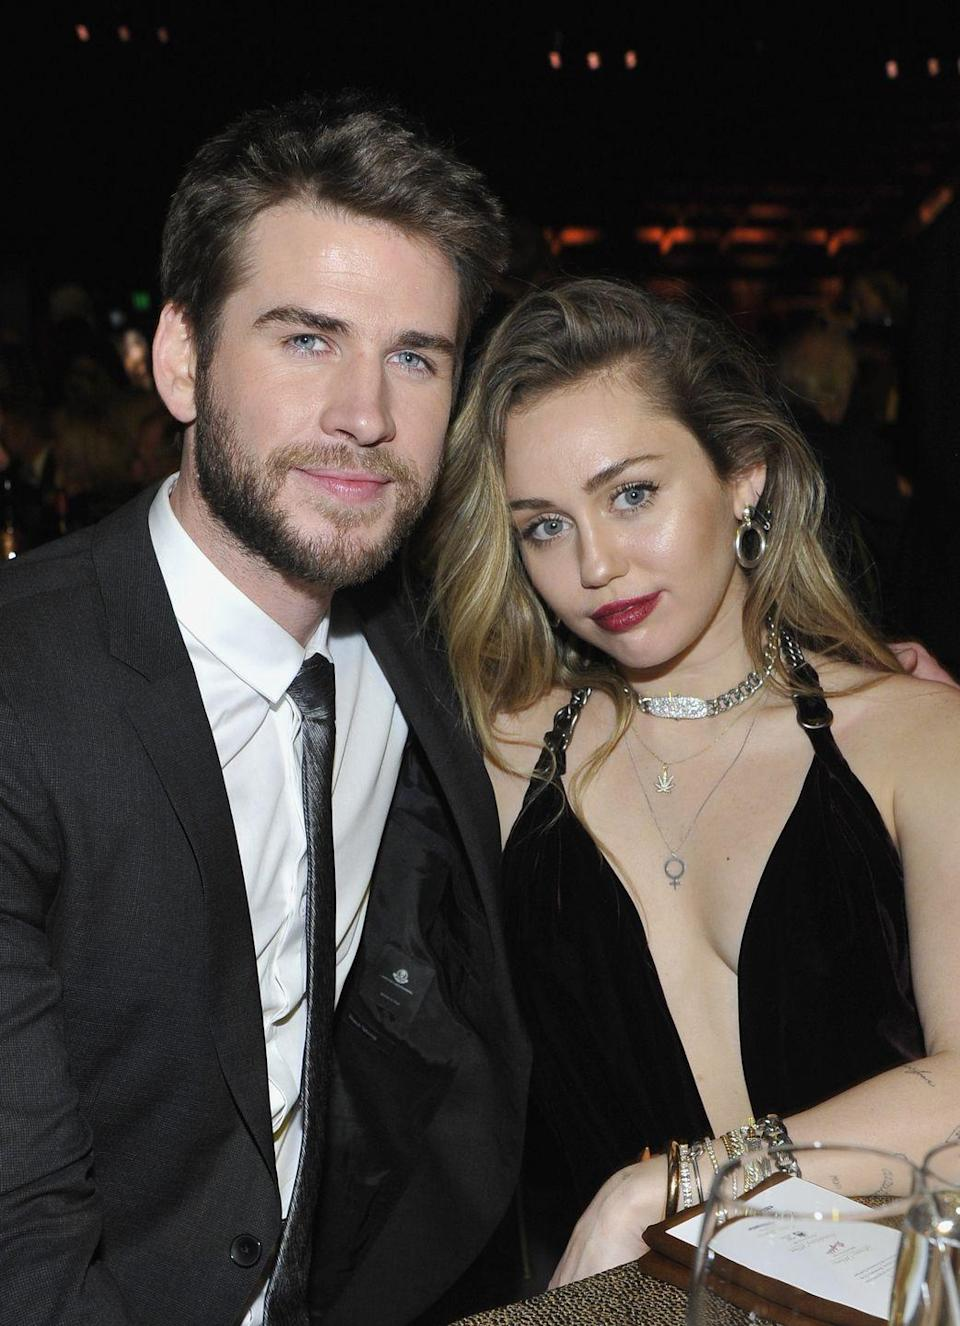 """<p>Miley Cyrus and Liam Hemsworth's <a href=""""https://www.womenshealthmag.com/relationships/g30404930/on-again-off-again-celebrity-relationships/?slide=4"""" rel=""""nofollow noopener"""" target=""""_blank"""" data-ylk=""""slk:on-again, off-again (and on-again, off-again)"""" class=""""link rapid-noclick-resp"""">on-again, off-again (and on-again, off-again)</a> romance all started while filming the Nicholas Sparks adaptation of The Last Song. They had a palpable connection that radiated on-screen. After several breakups, two engagements and a secret wedding, the pair <a href=""""https://people.com/music/miley-cyrus-liam-hemsworth-split/"""" rel=""""nofollow noopener"""" target=""""_blank"""" data-ylk=""""slk:split for good in 2019"""" class=""""link rapid-noclick-resp"""">split for good in 2019</a>.</p>"""